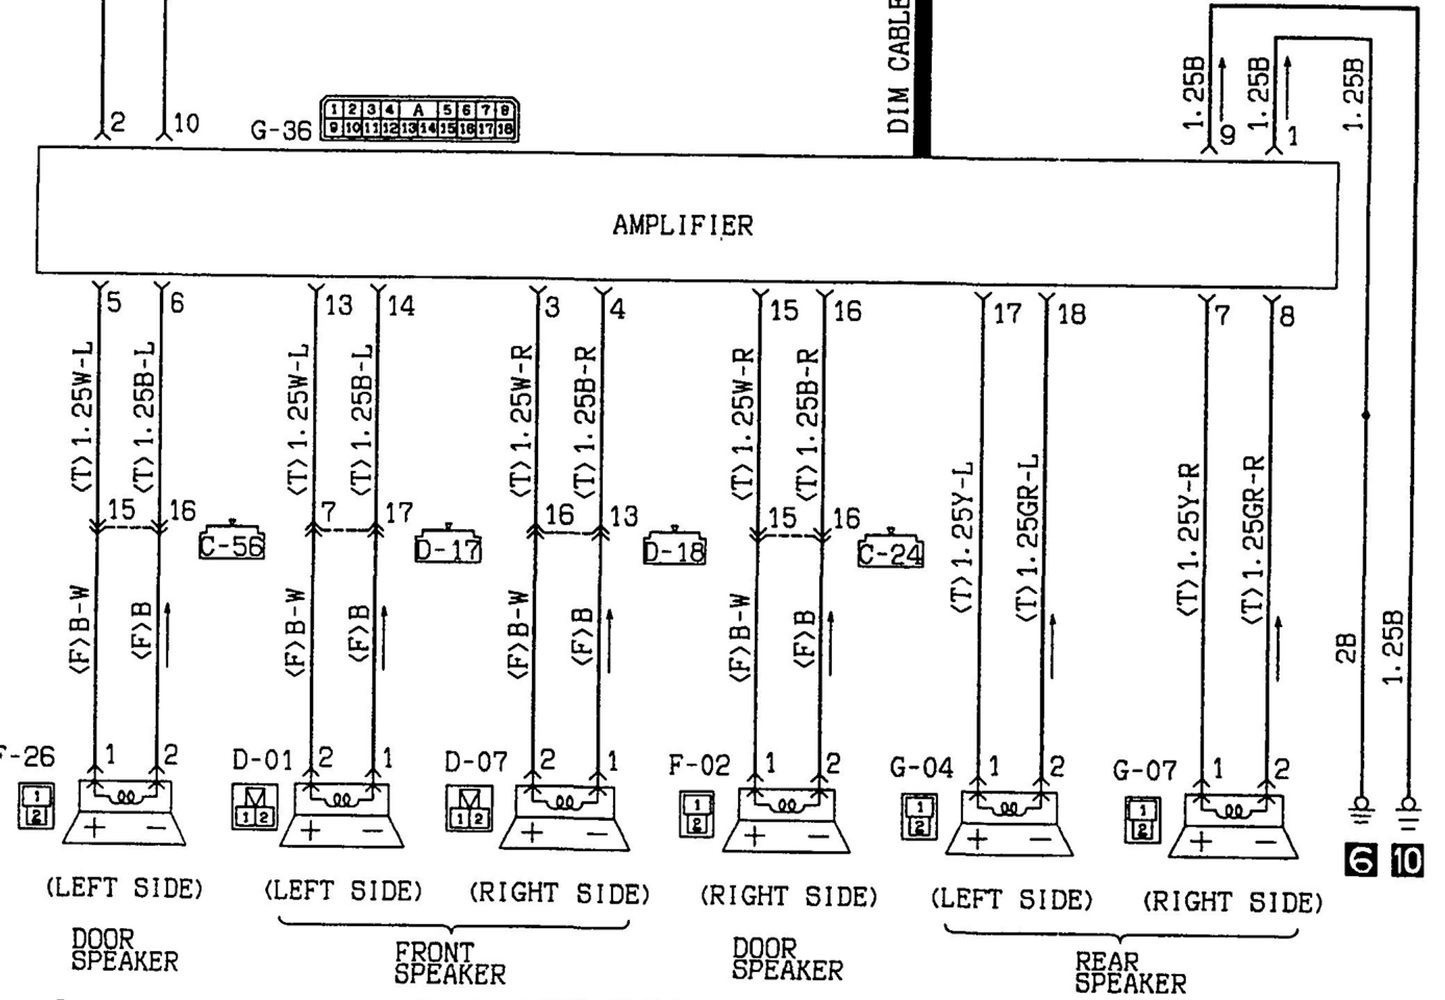 Wiring Diagram Kenwood Kdc 1022 On Kenwood Car Stereo Kdc 222 Wiring